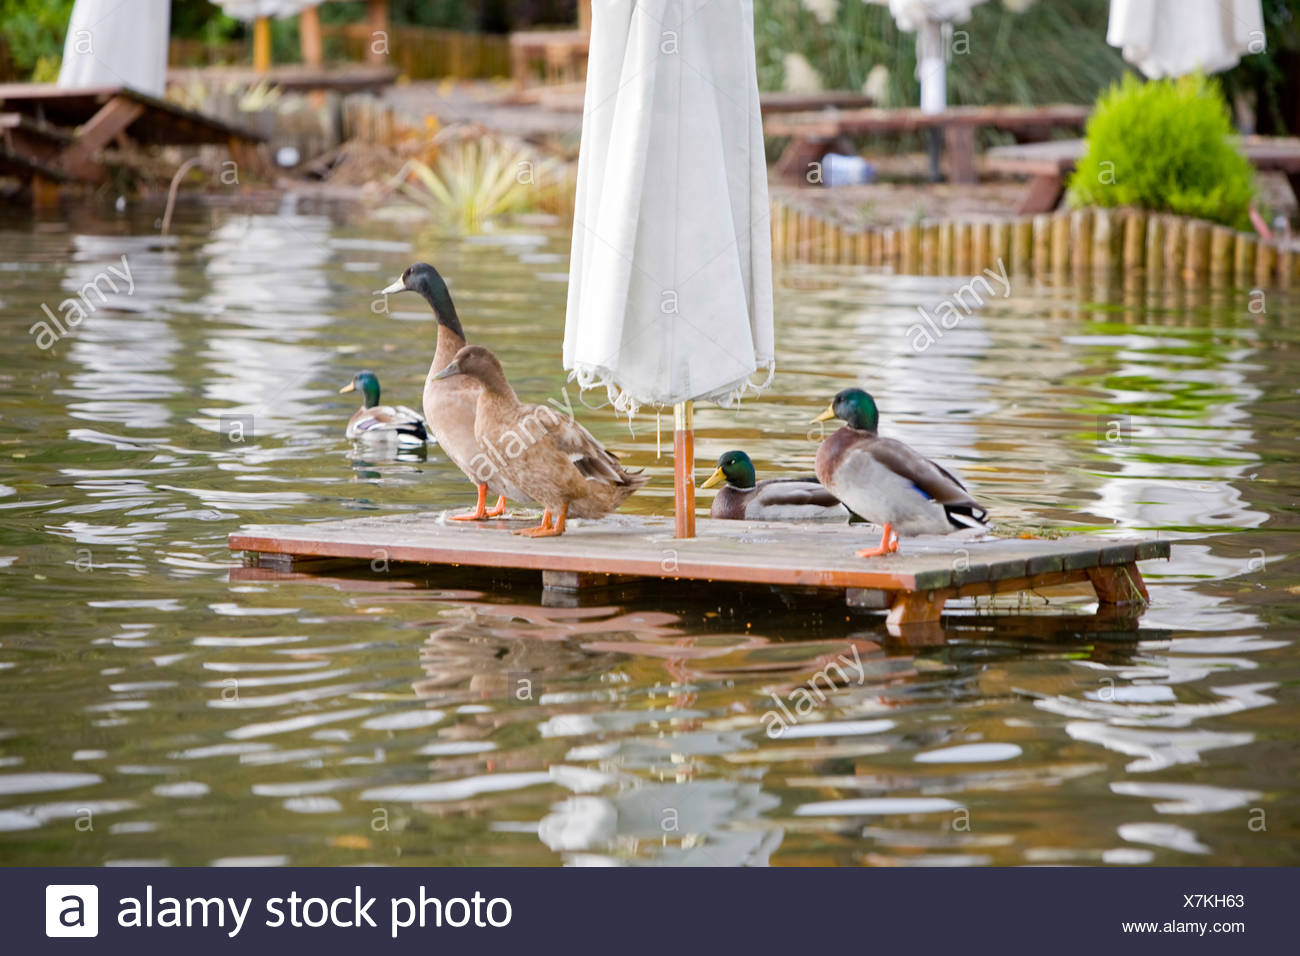 Flooding in the beer garden of The Wateredge Inn at Waterhead on Lake Windermere in Ambleside UK - Stock Image